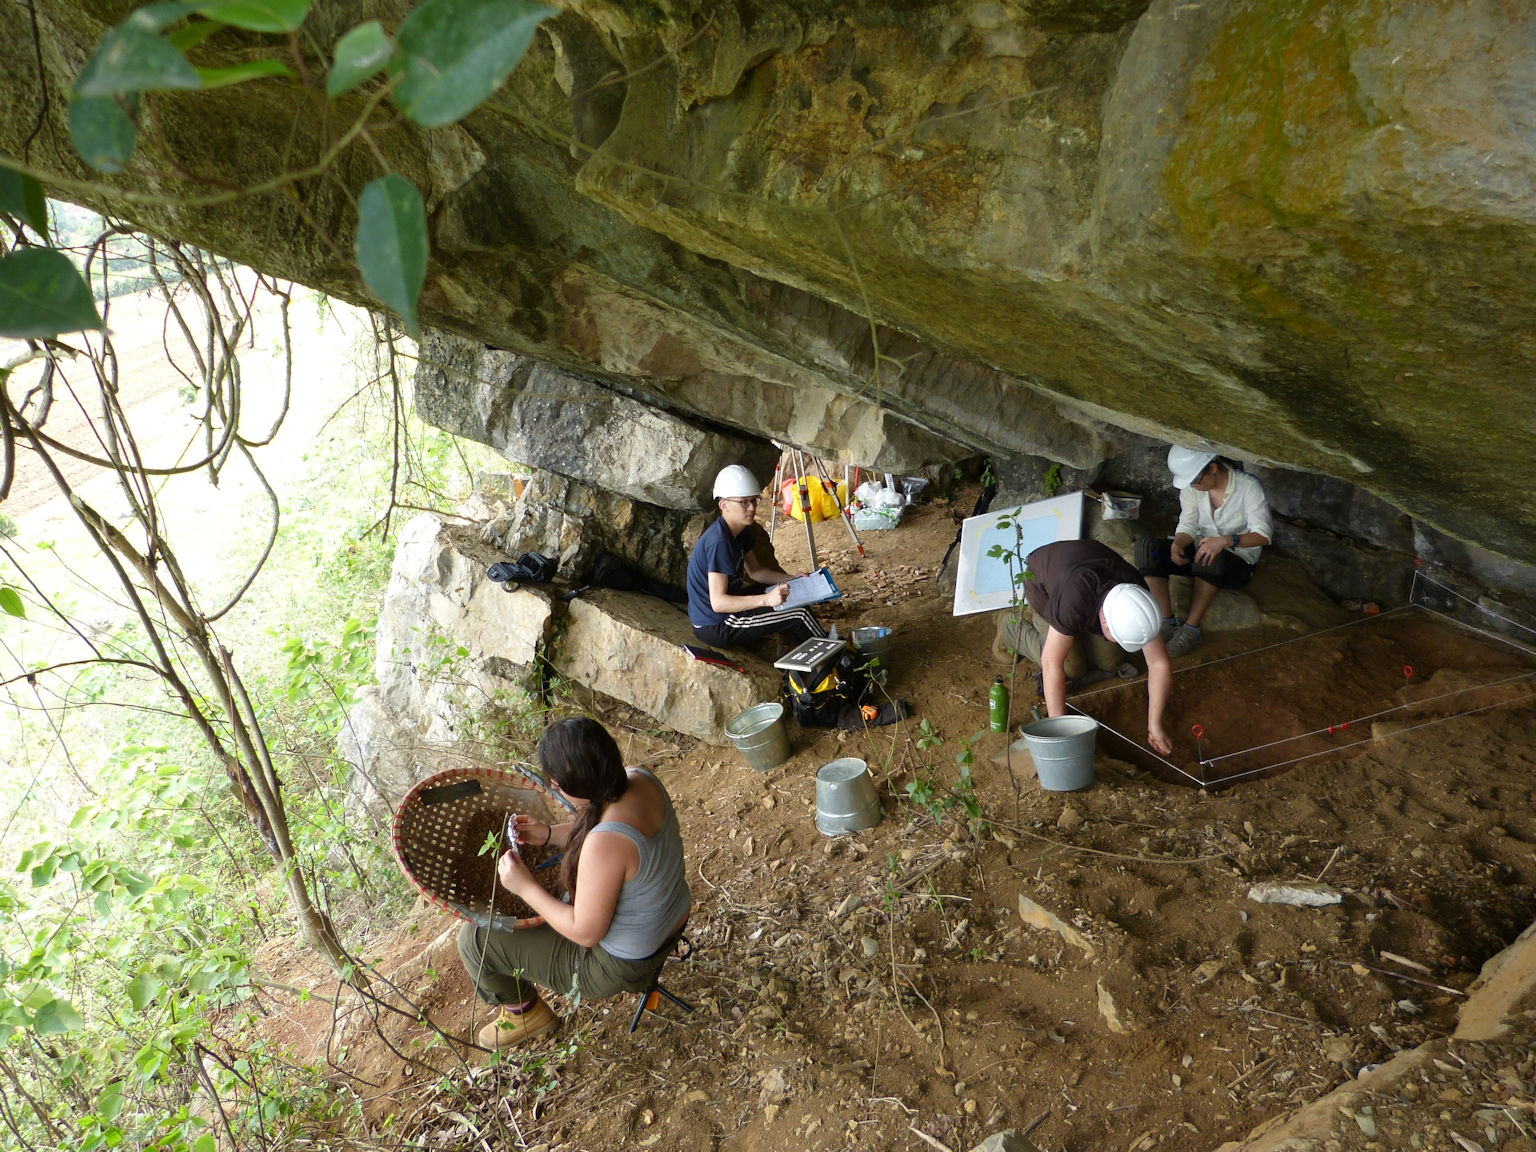 Excavations underway at Thung Binh 1